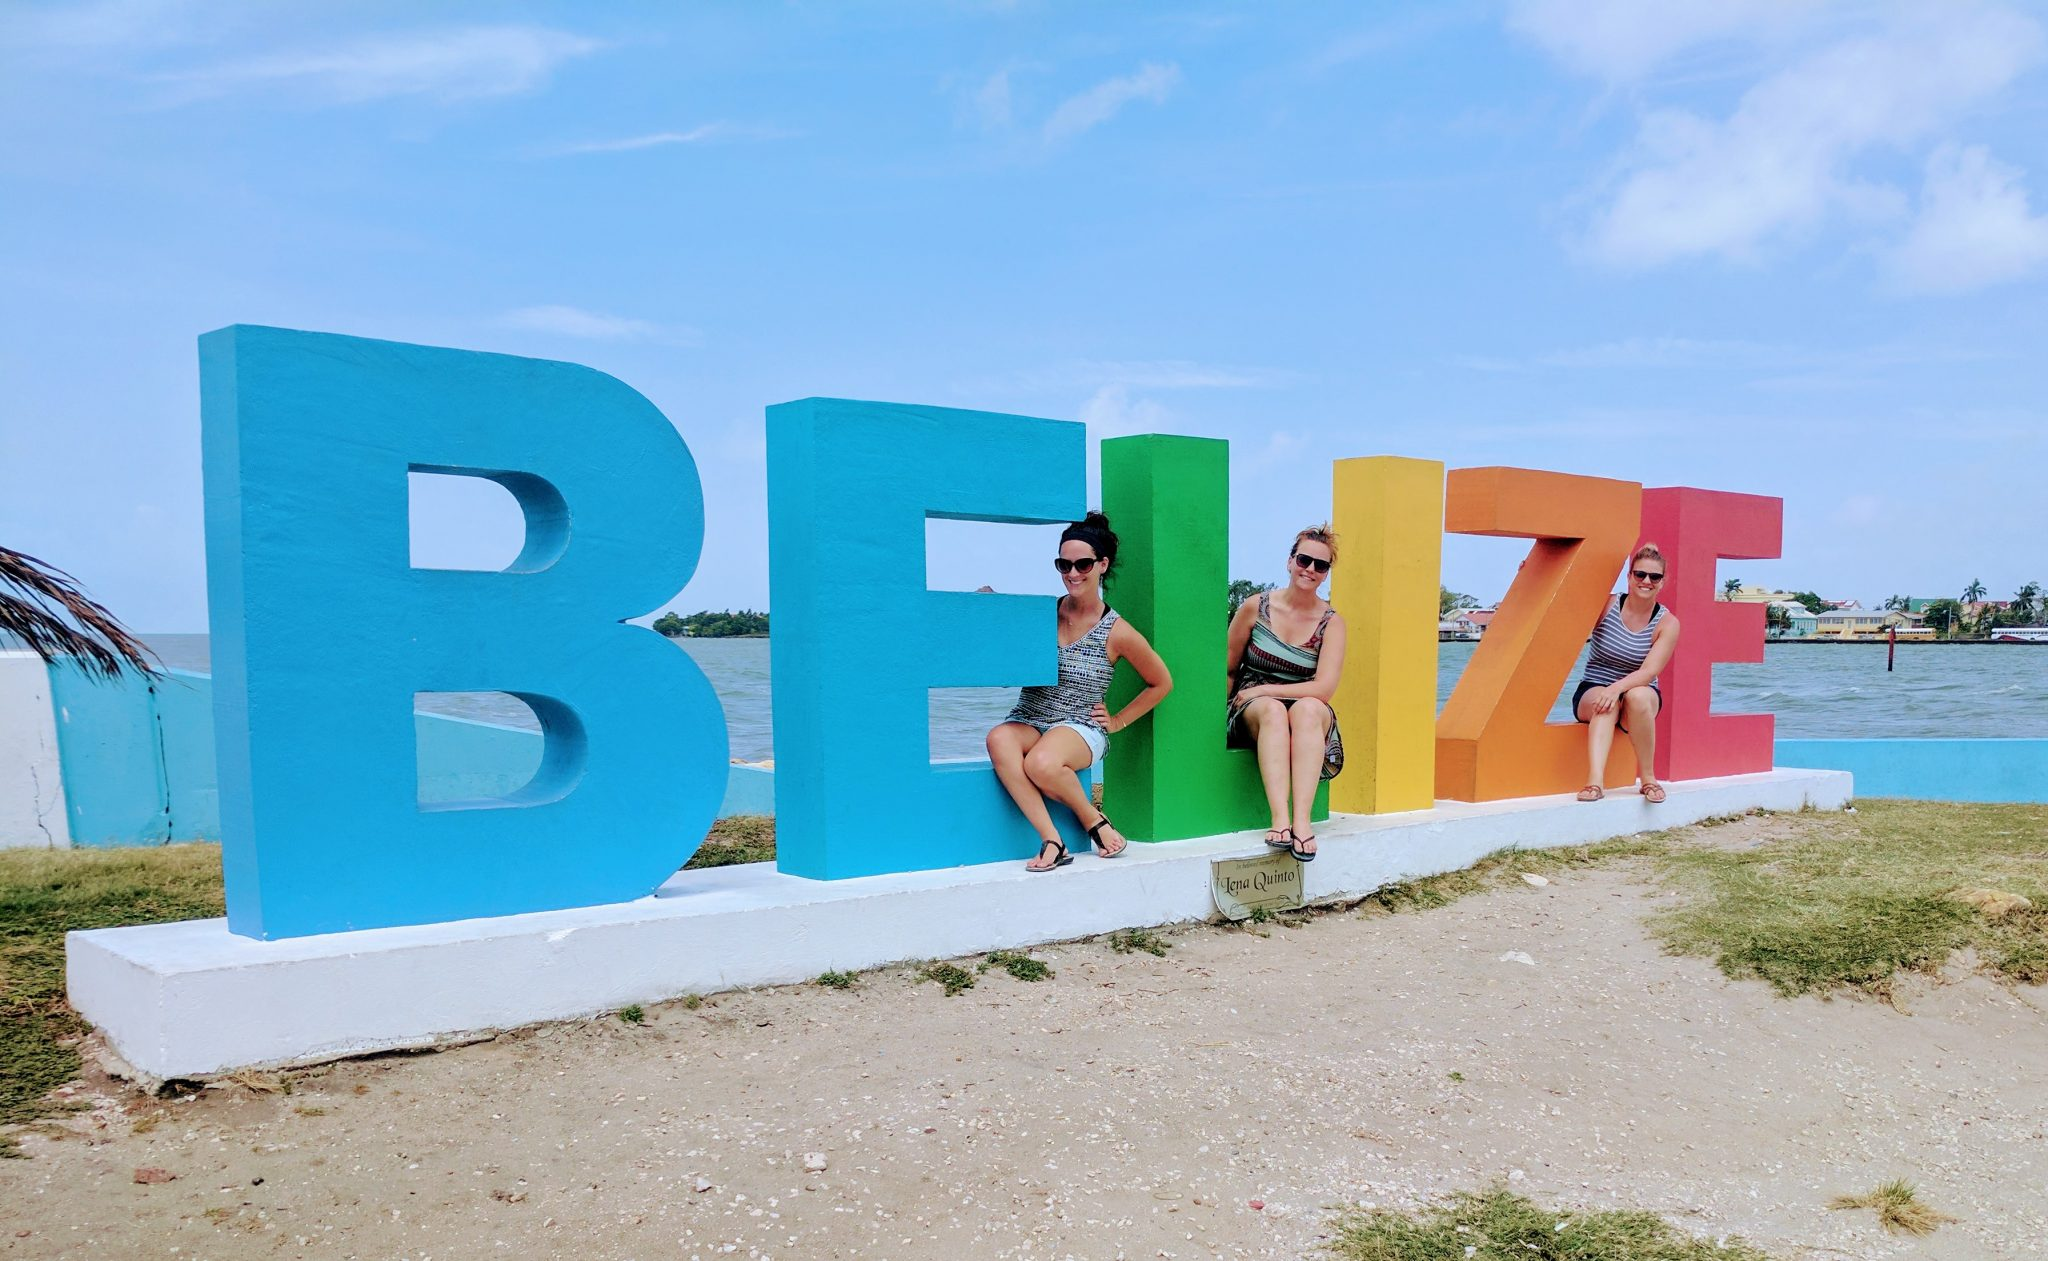 How To Make Your Belize Vacation UnBELIZEABLE!